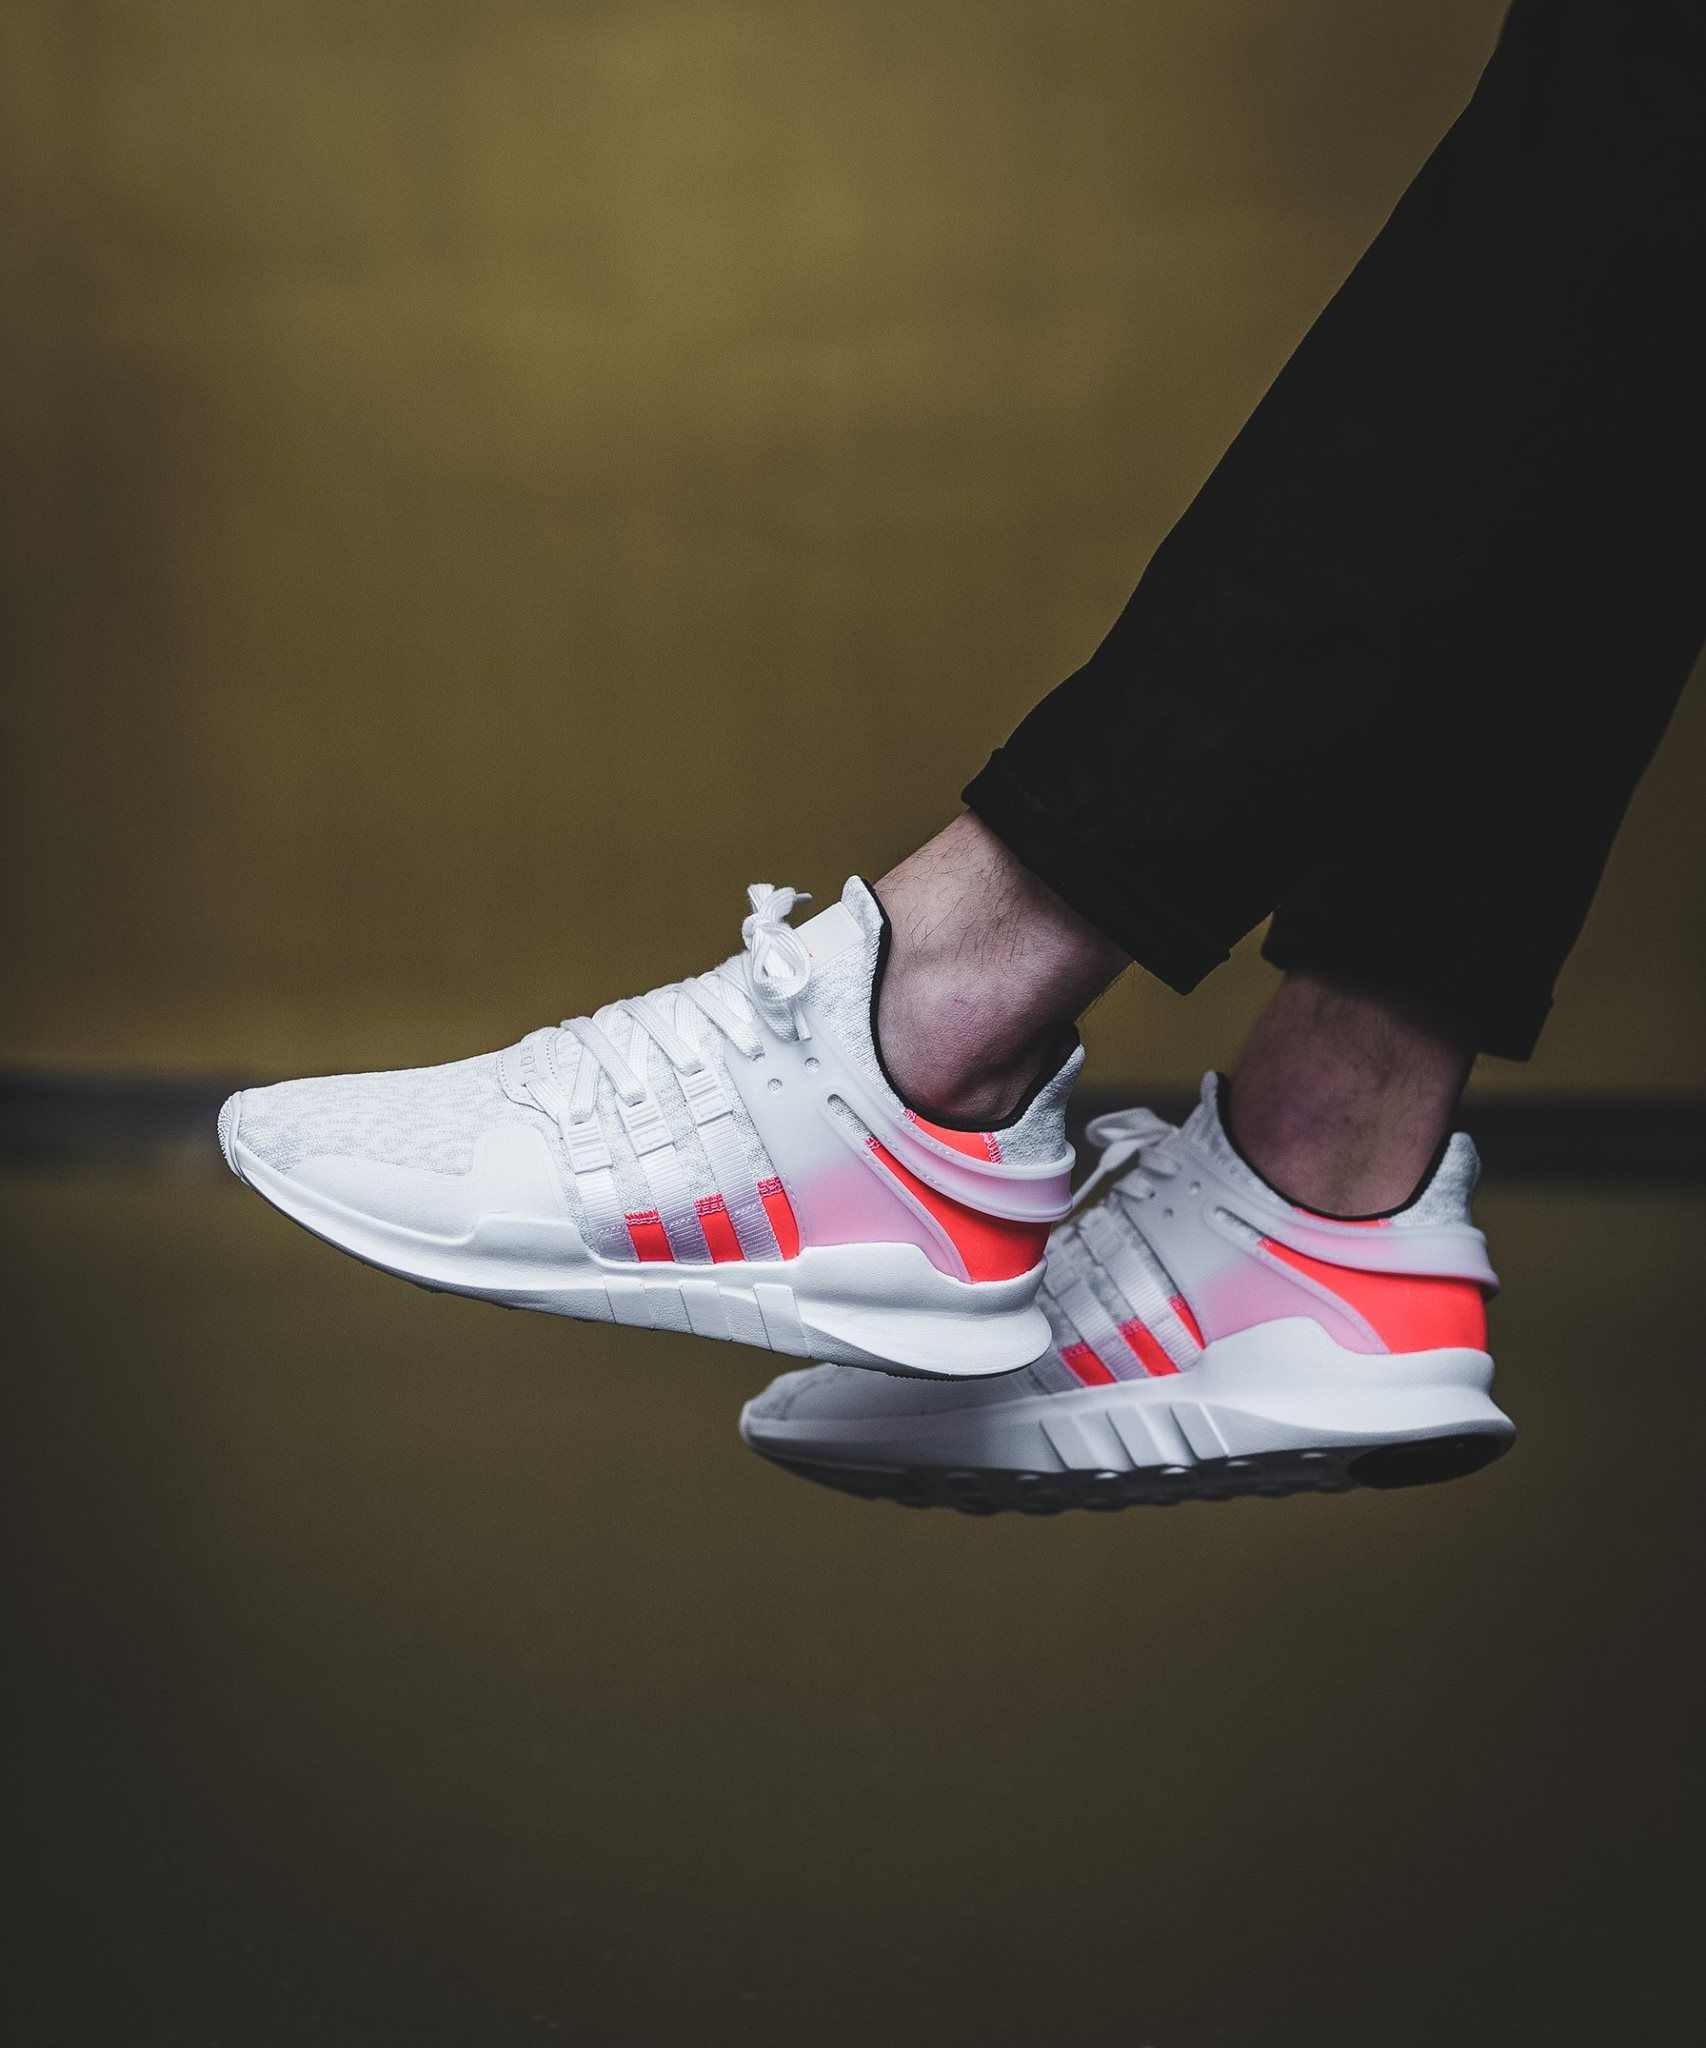 huge discount 275fe 62ddb adidas Eqt Support ADV  Crystal White   Turbo  (BB2791) - KICKS-DAILY.COM